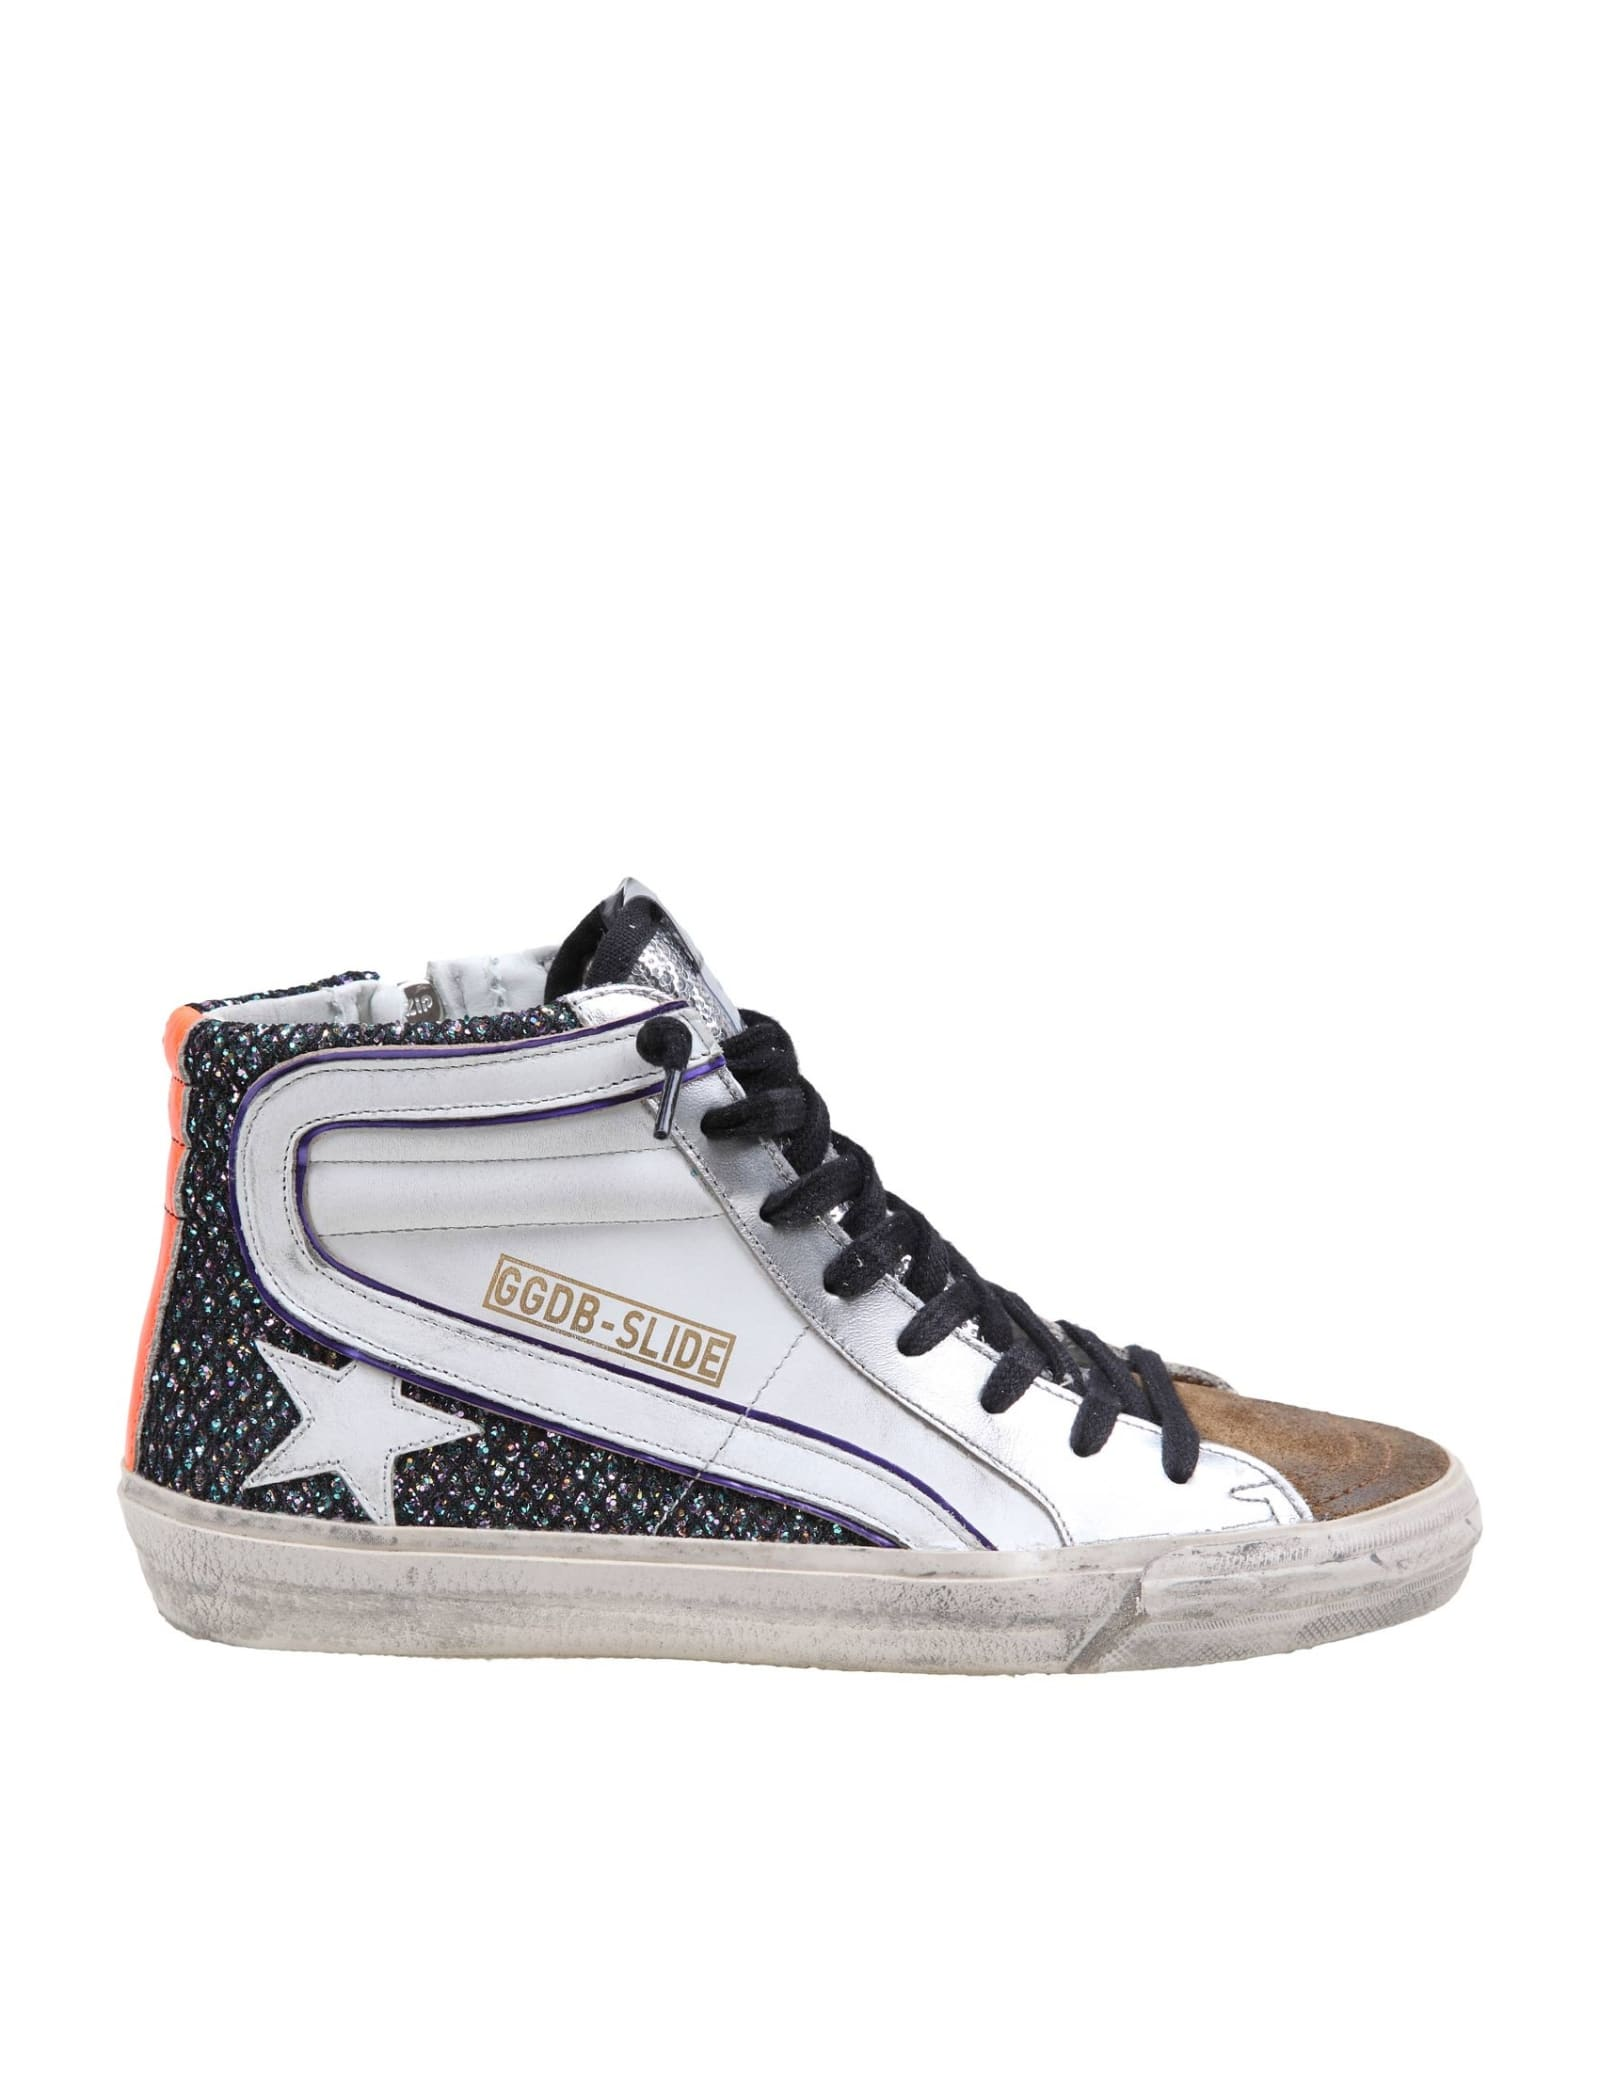 Sneakers in leather, suede and glittered mesh multicolor model with round tip closure with laces and zip ggdb star in leather suede toe interior in leather and fabric vintage treatment rubber sole made in italy